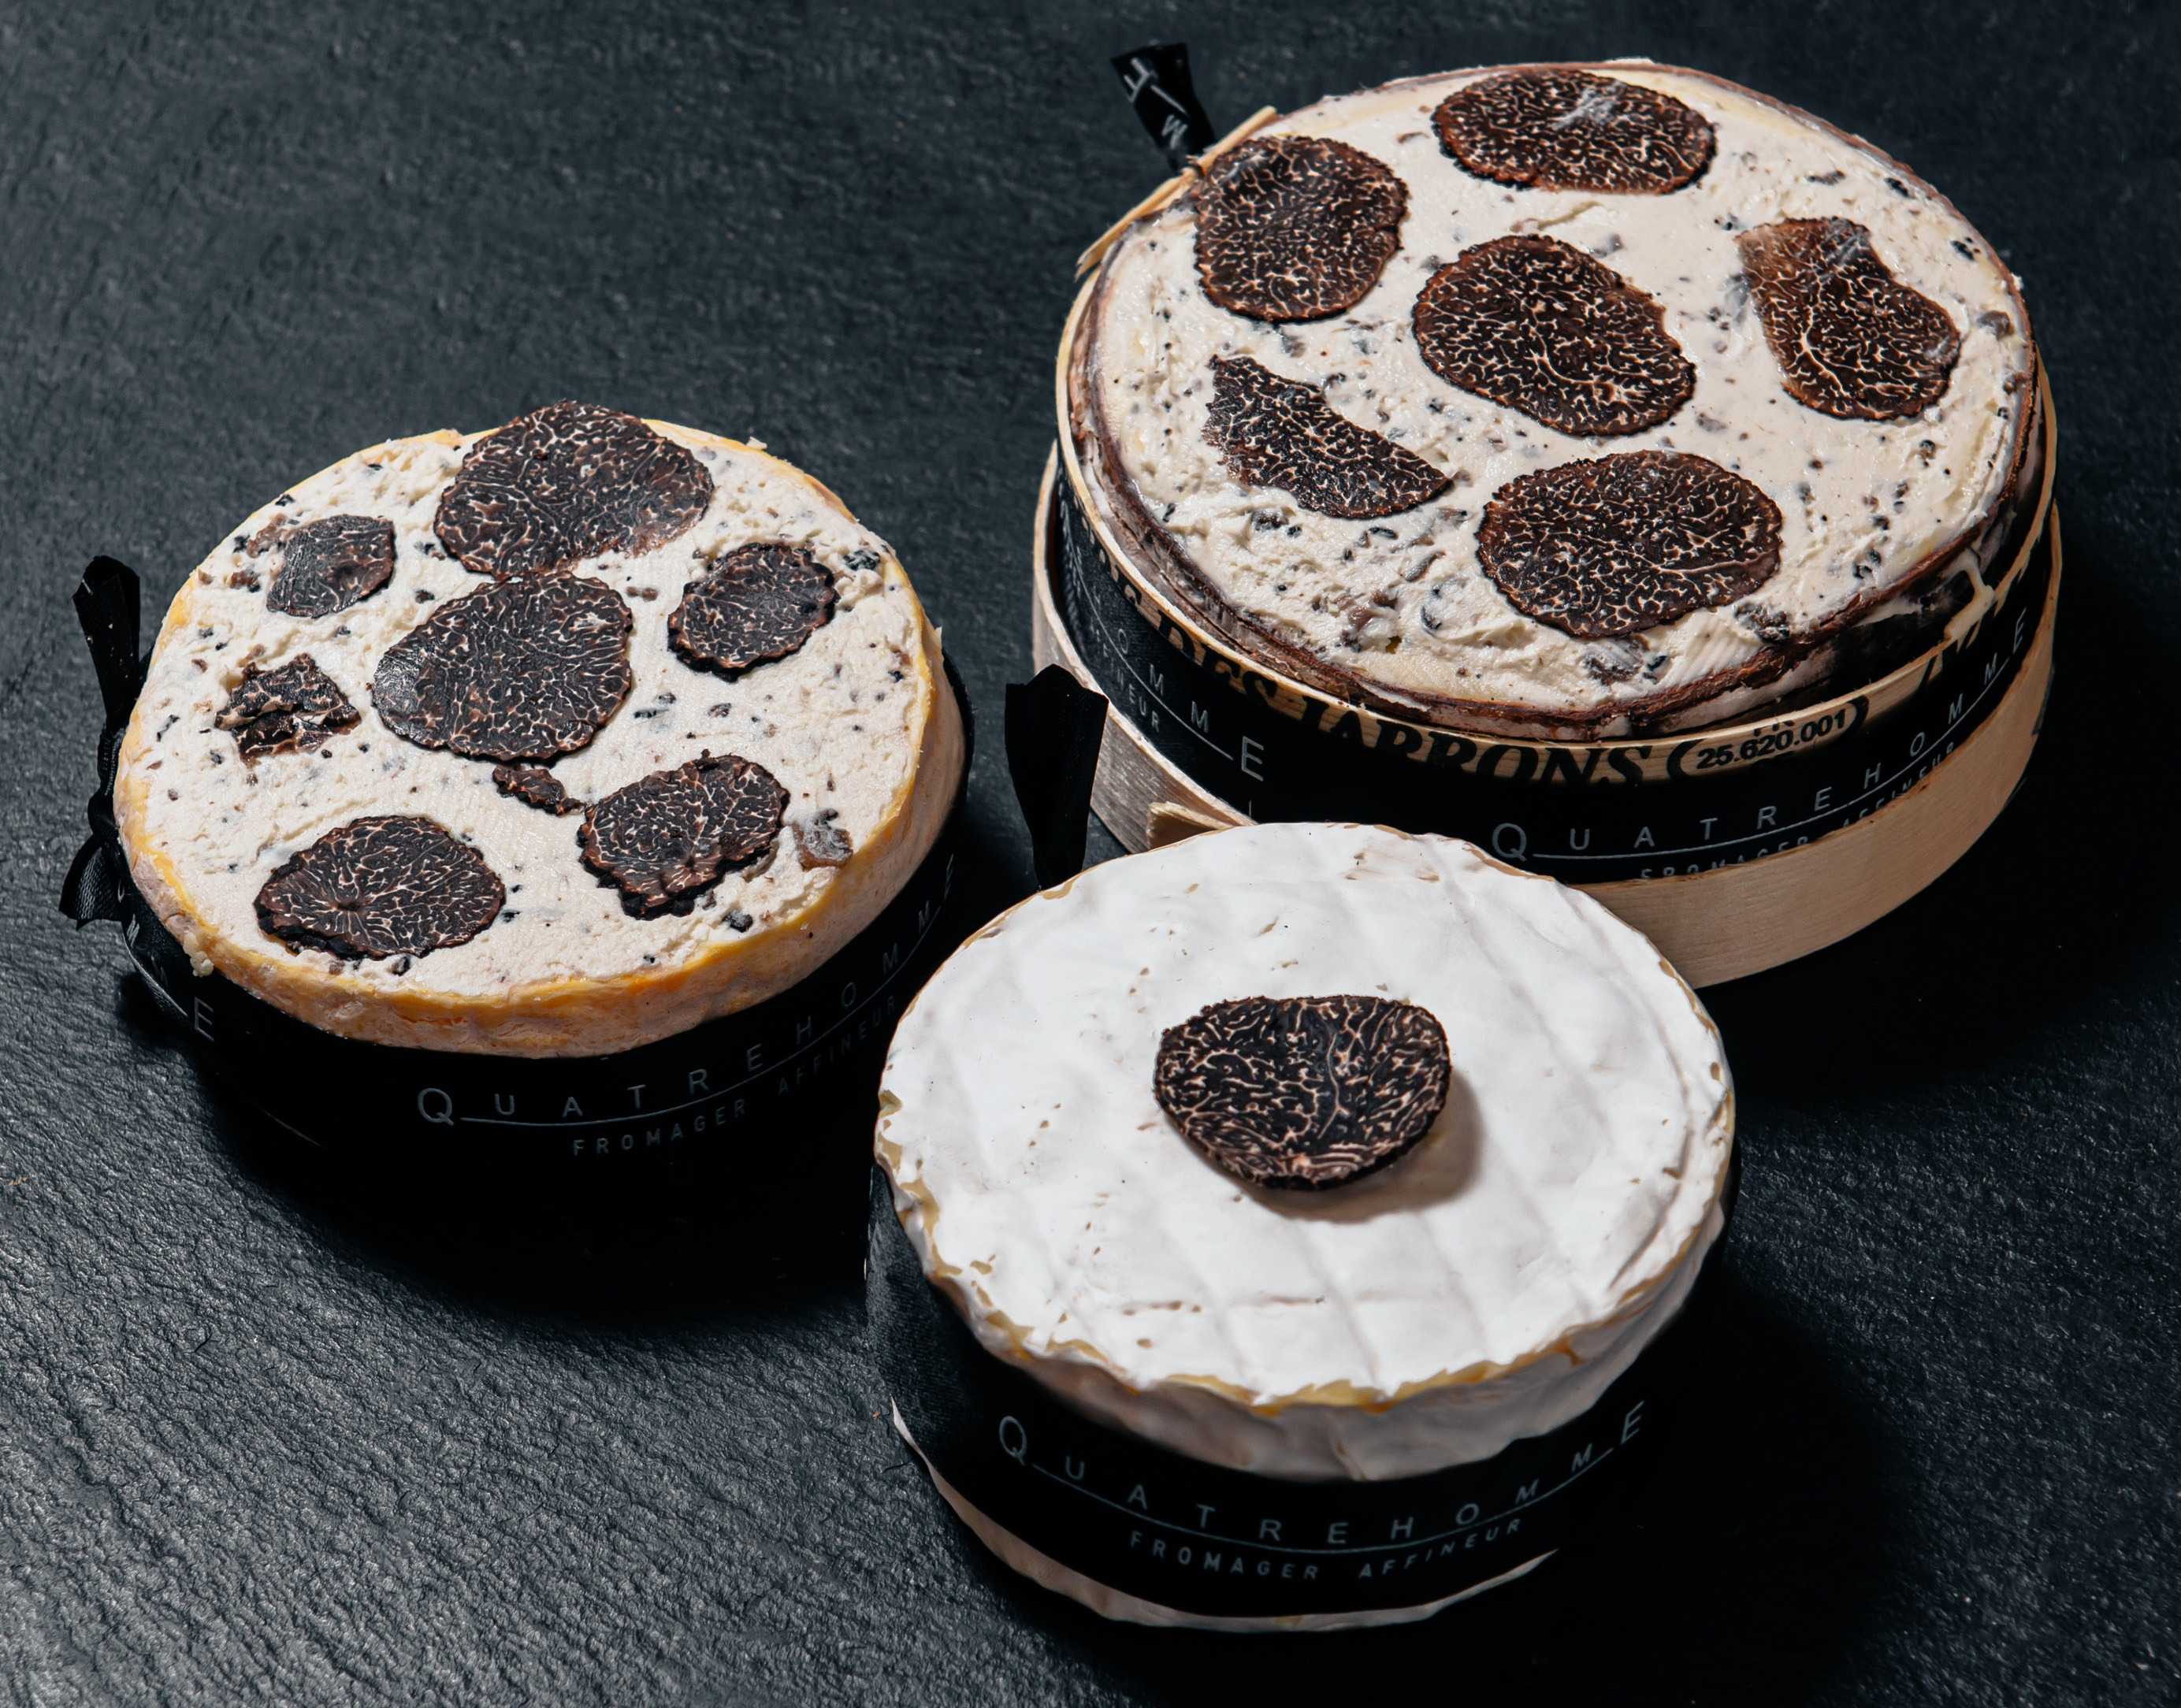 Mont d'Or with truffle